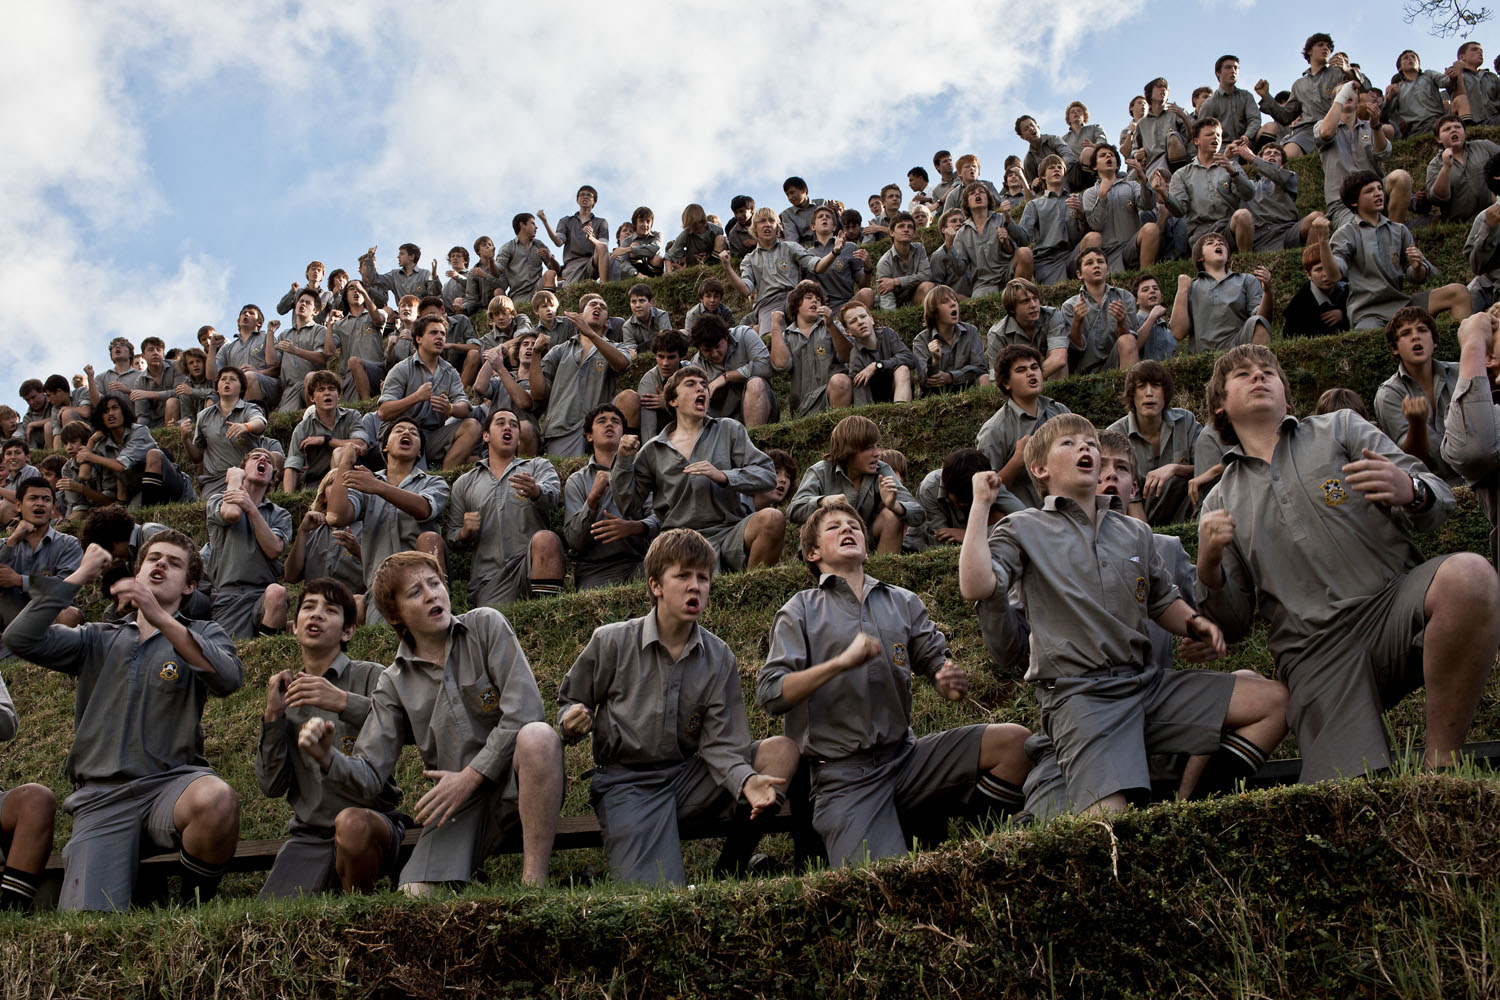 The Washington Post In Sight: Inside the Haka: New Zealand's international domination of rugbyStudents from New Plymouth Boys' High School support their team during a game against Francis Douglas Memorial College, in New Plymouth, Taranaki, New Zealand.